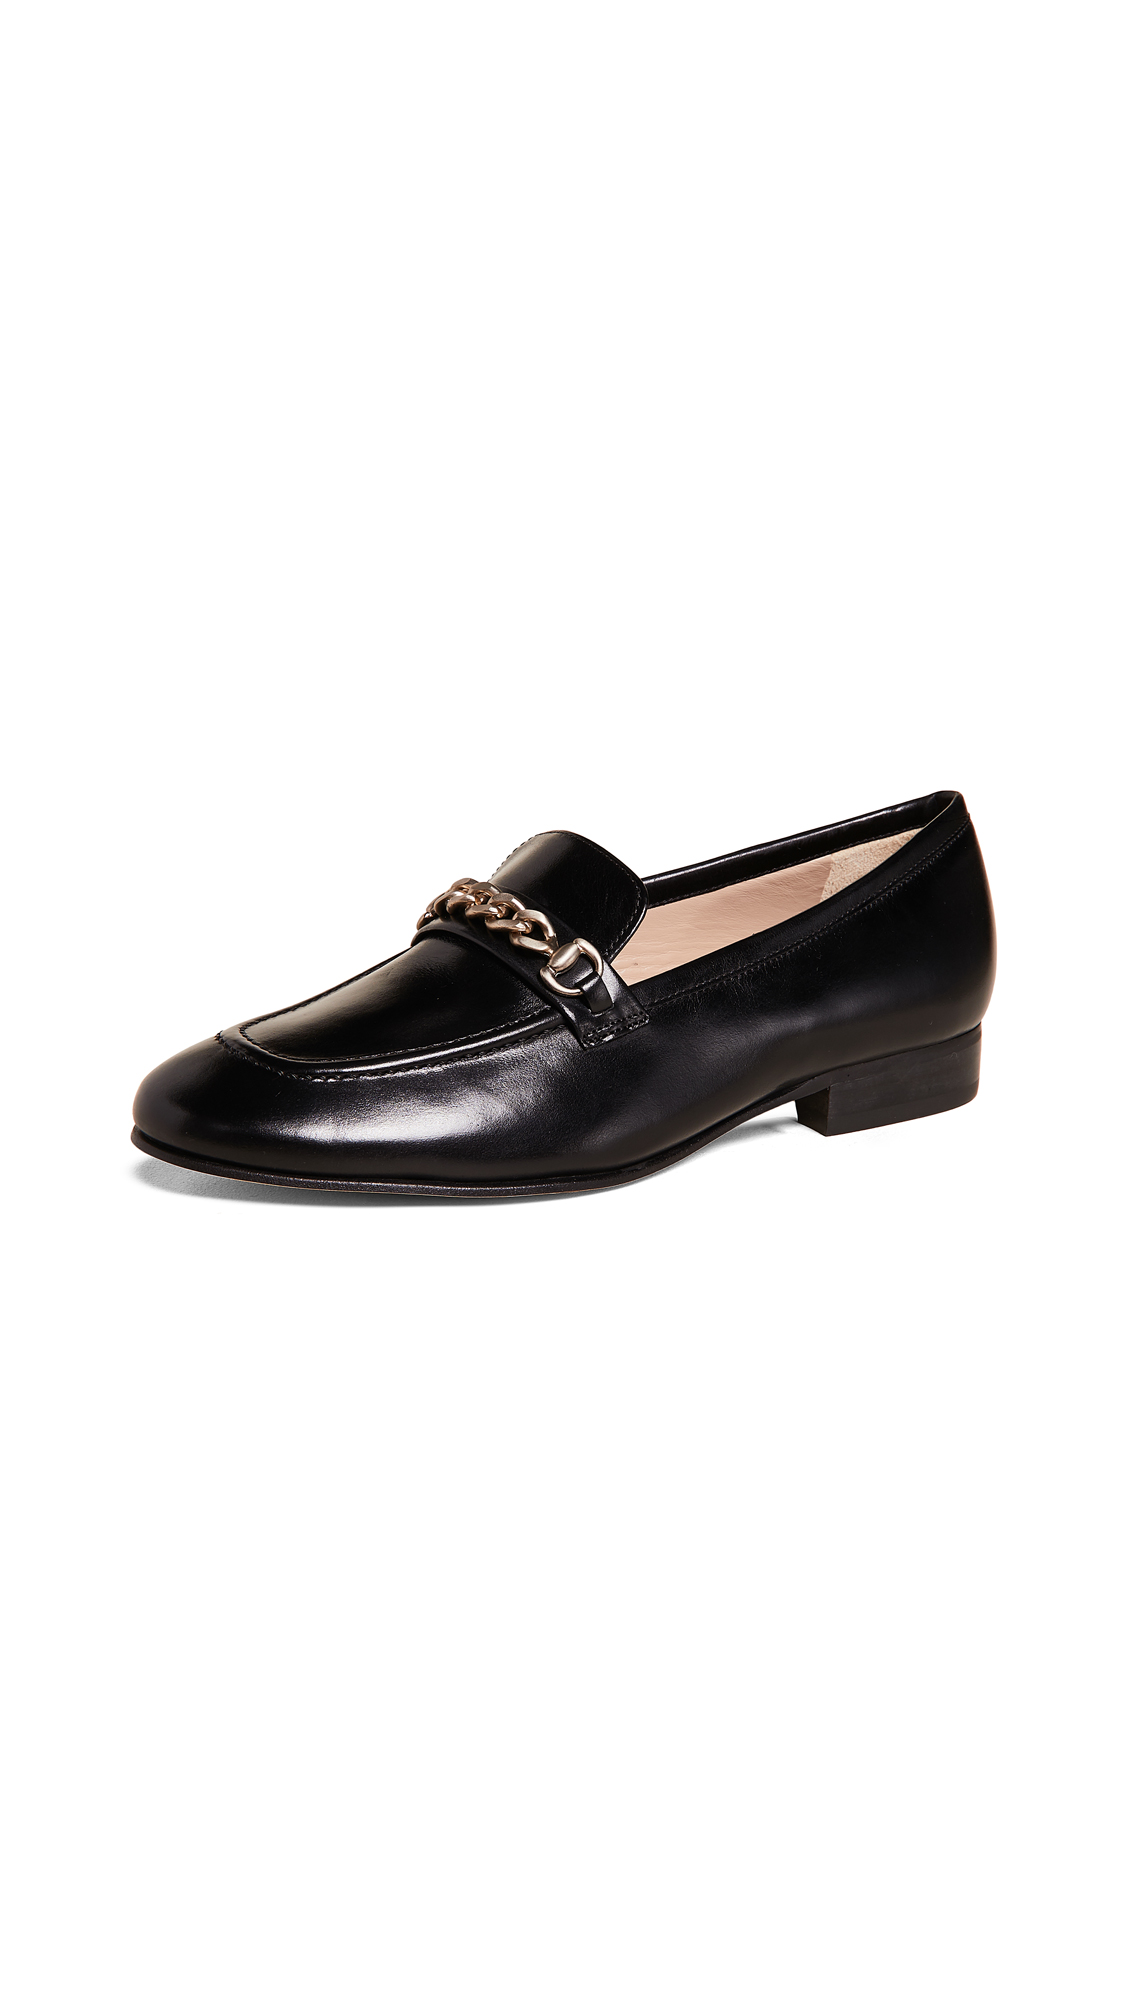 L.K. Bennett Stevie Loafers